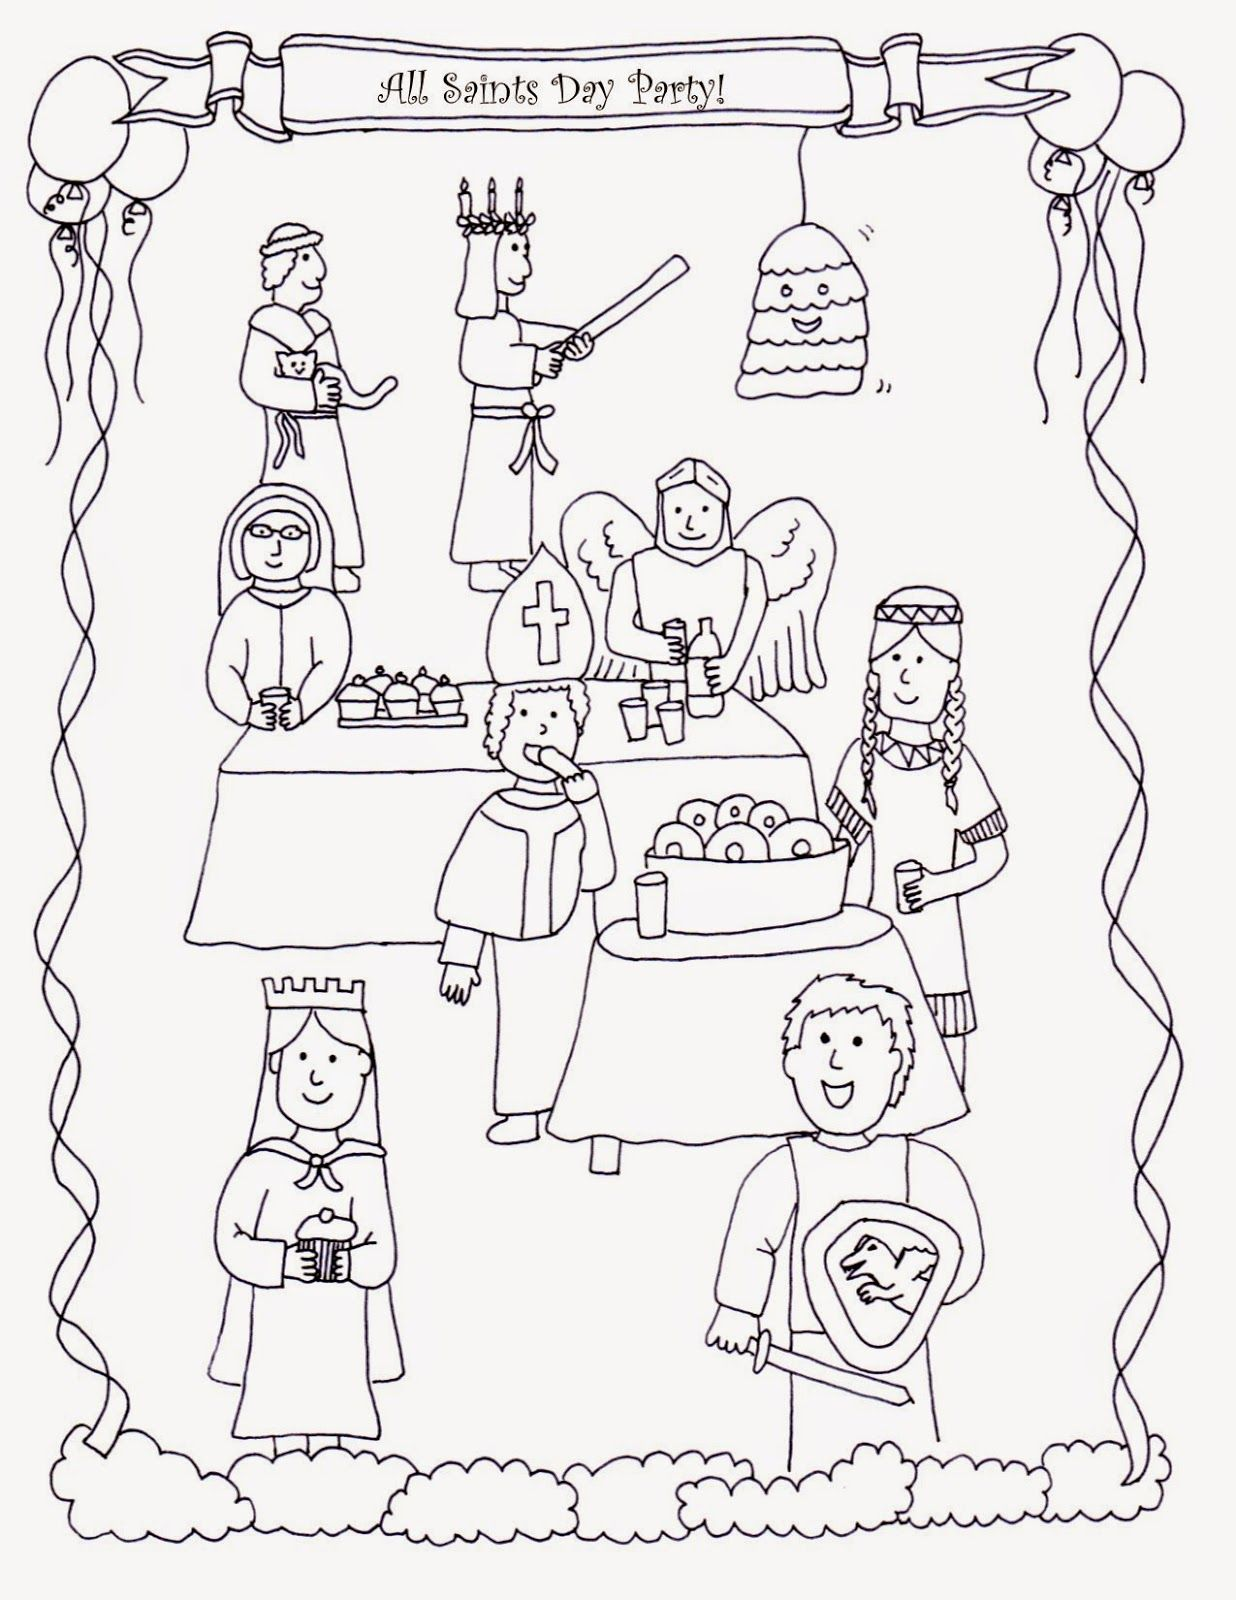 All Saints Day Coloring Pages święci Kolorowanki Saints St S Day Coloring Pages For Adults